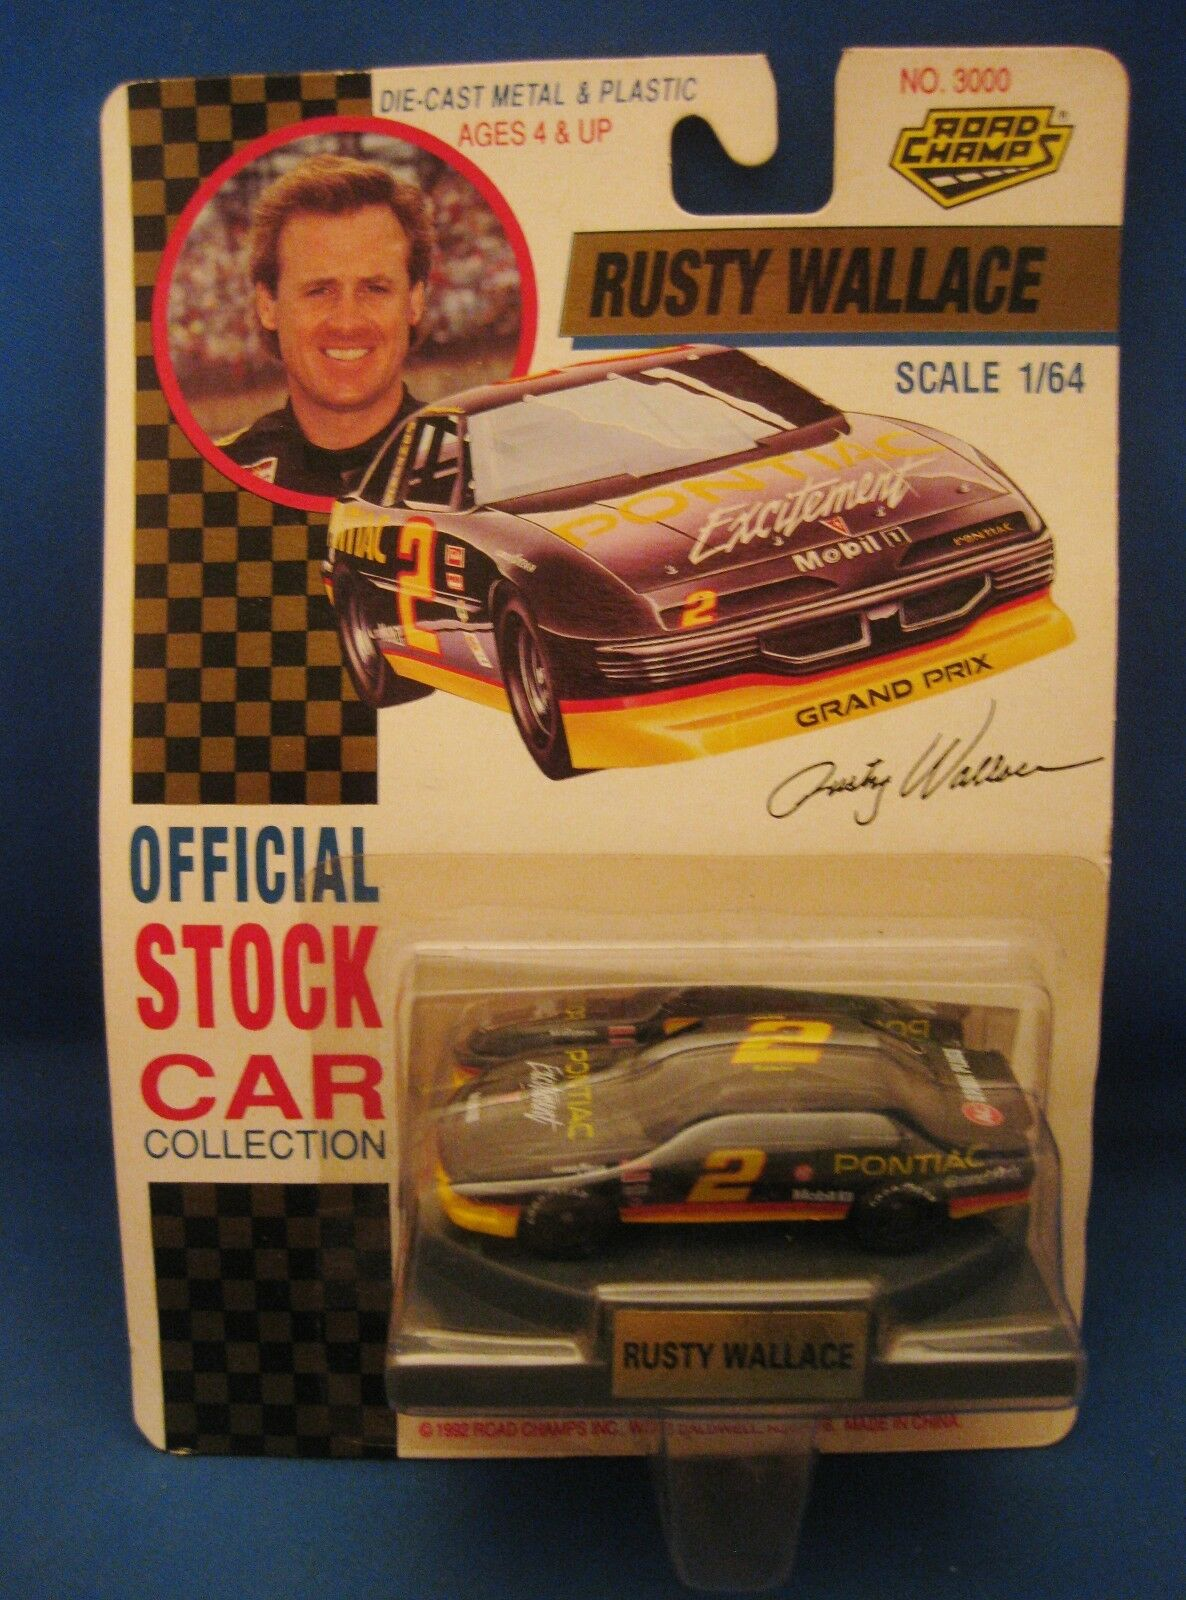 RUSTY WALLACE PONTIAC EXCITEMENT 1992 ROAD CHAMPS 1 64 SCALE DIE CAST